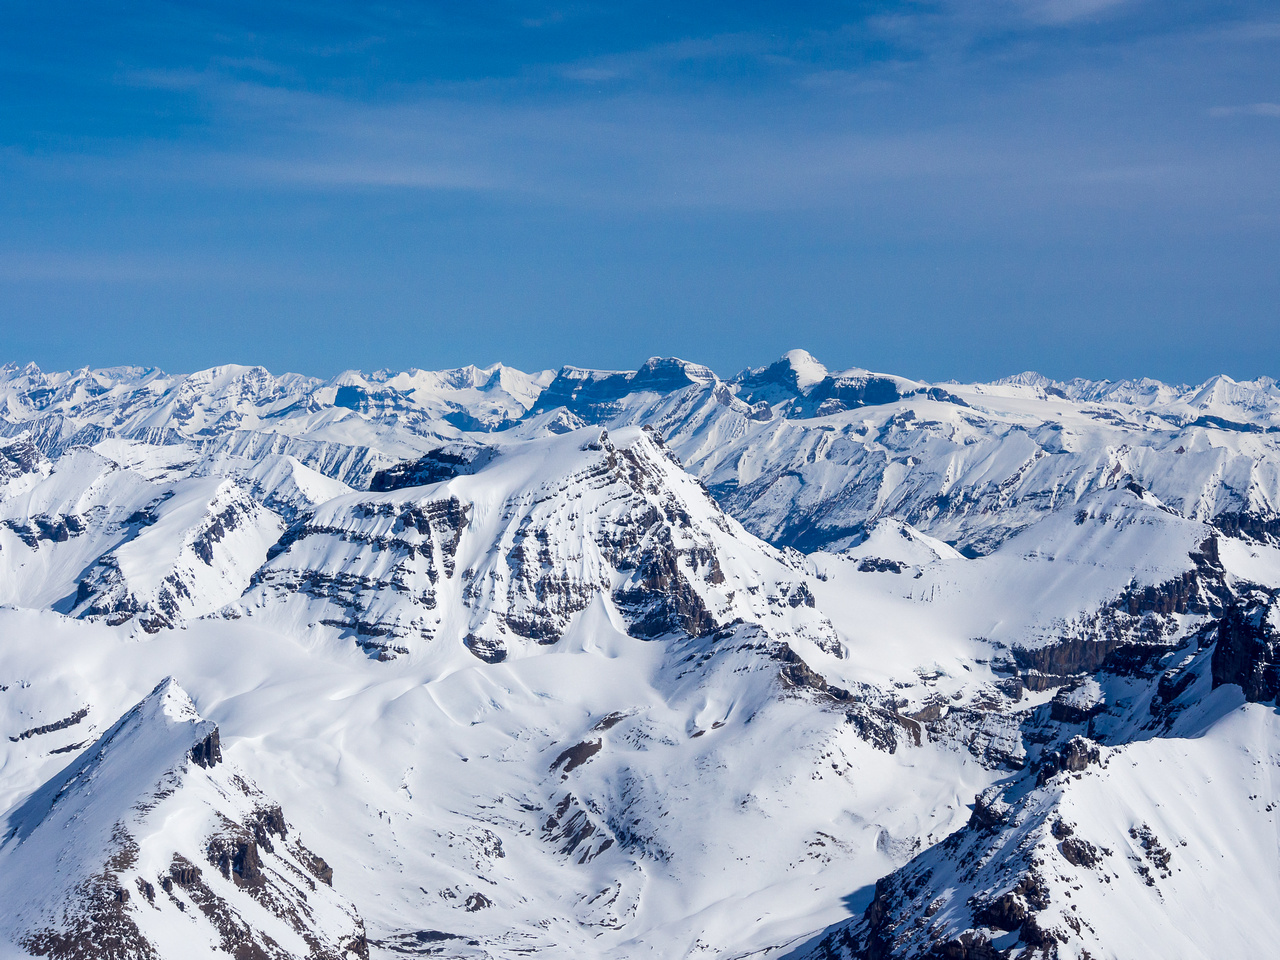 Mounts Warren and Brazeau in the far distance with Little Alberta in the lower left foreground and Woolley and Diadem at center.